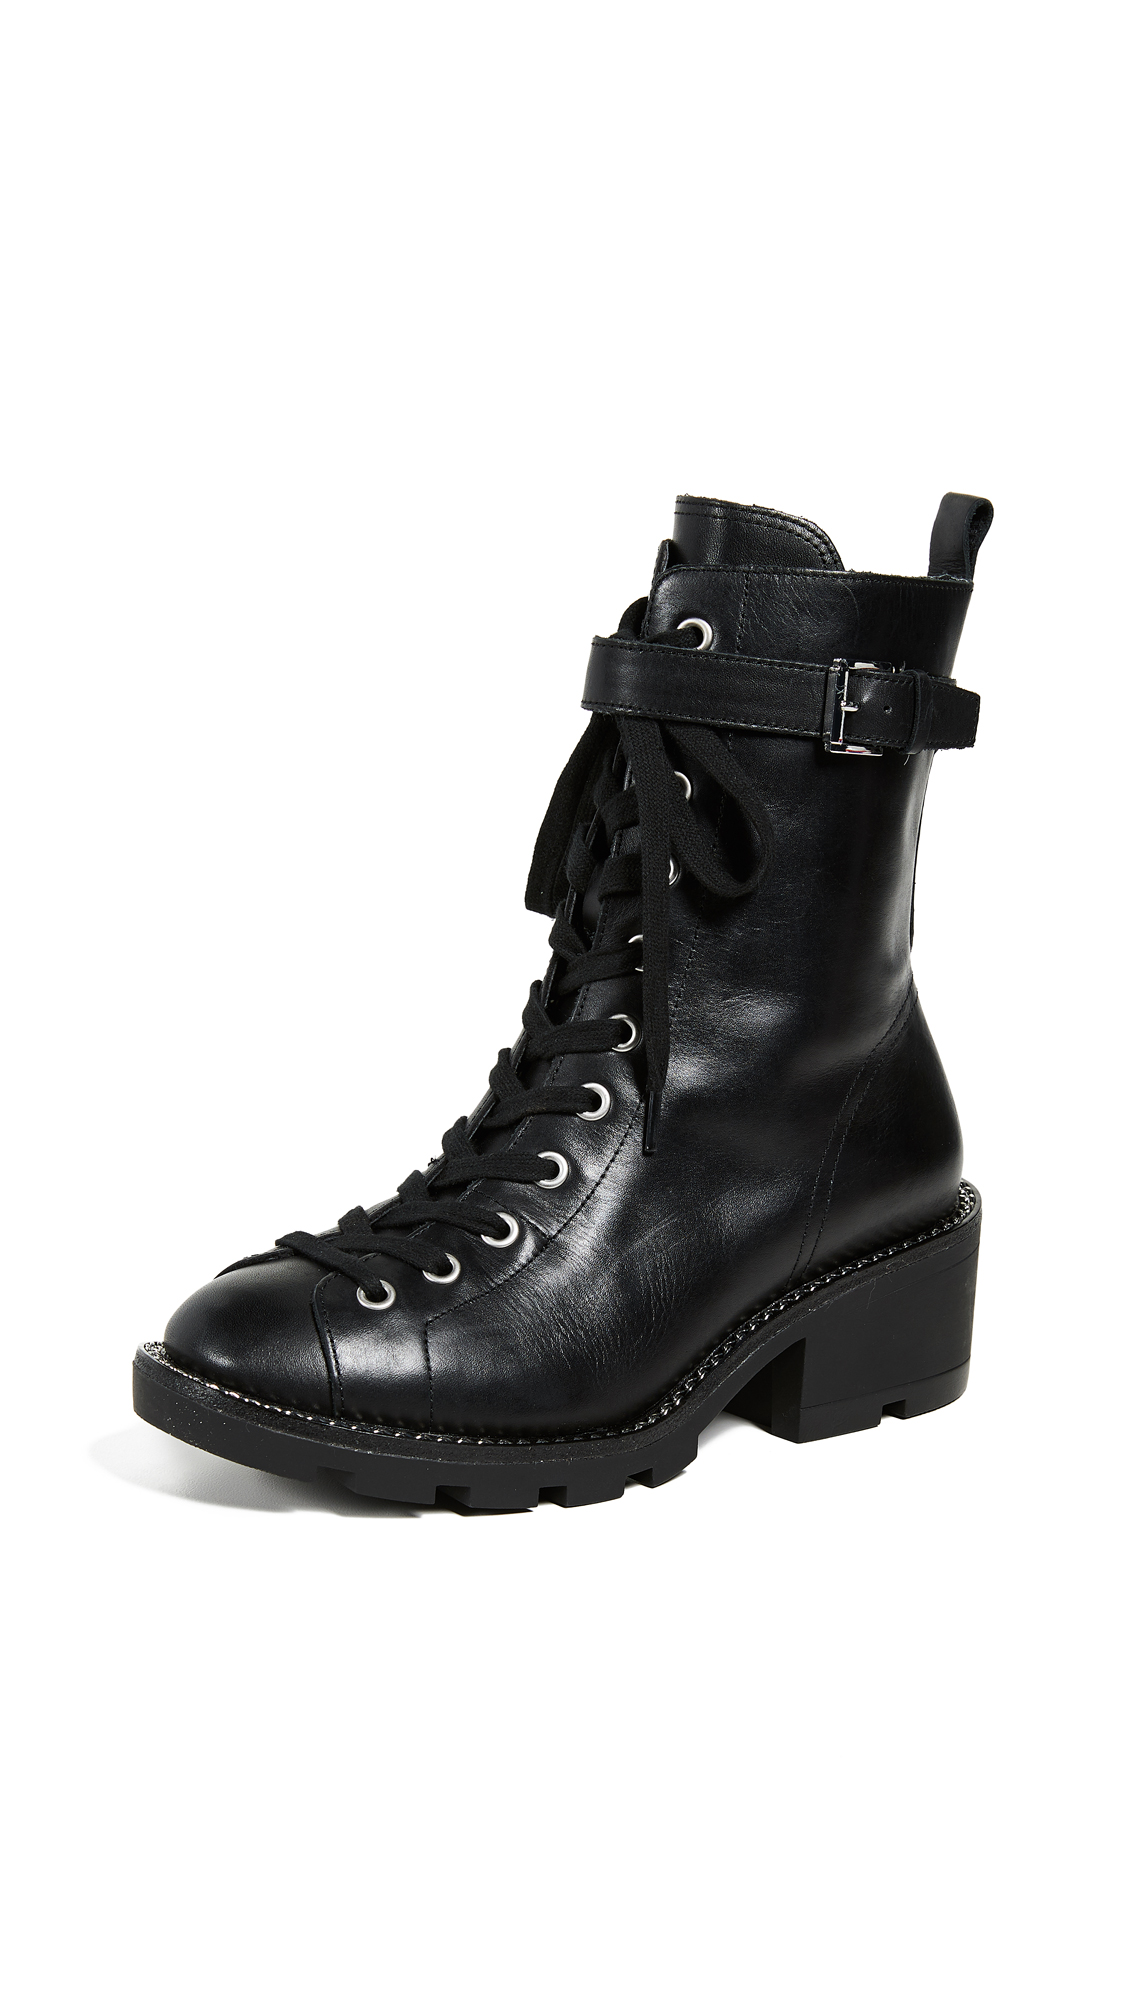 KENDALL + KYLIE Prime Combat Boots - Black